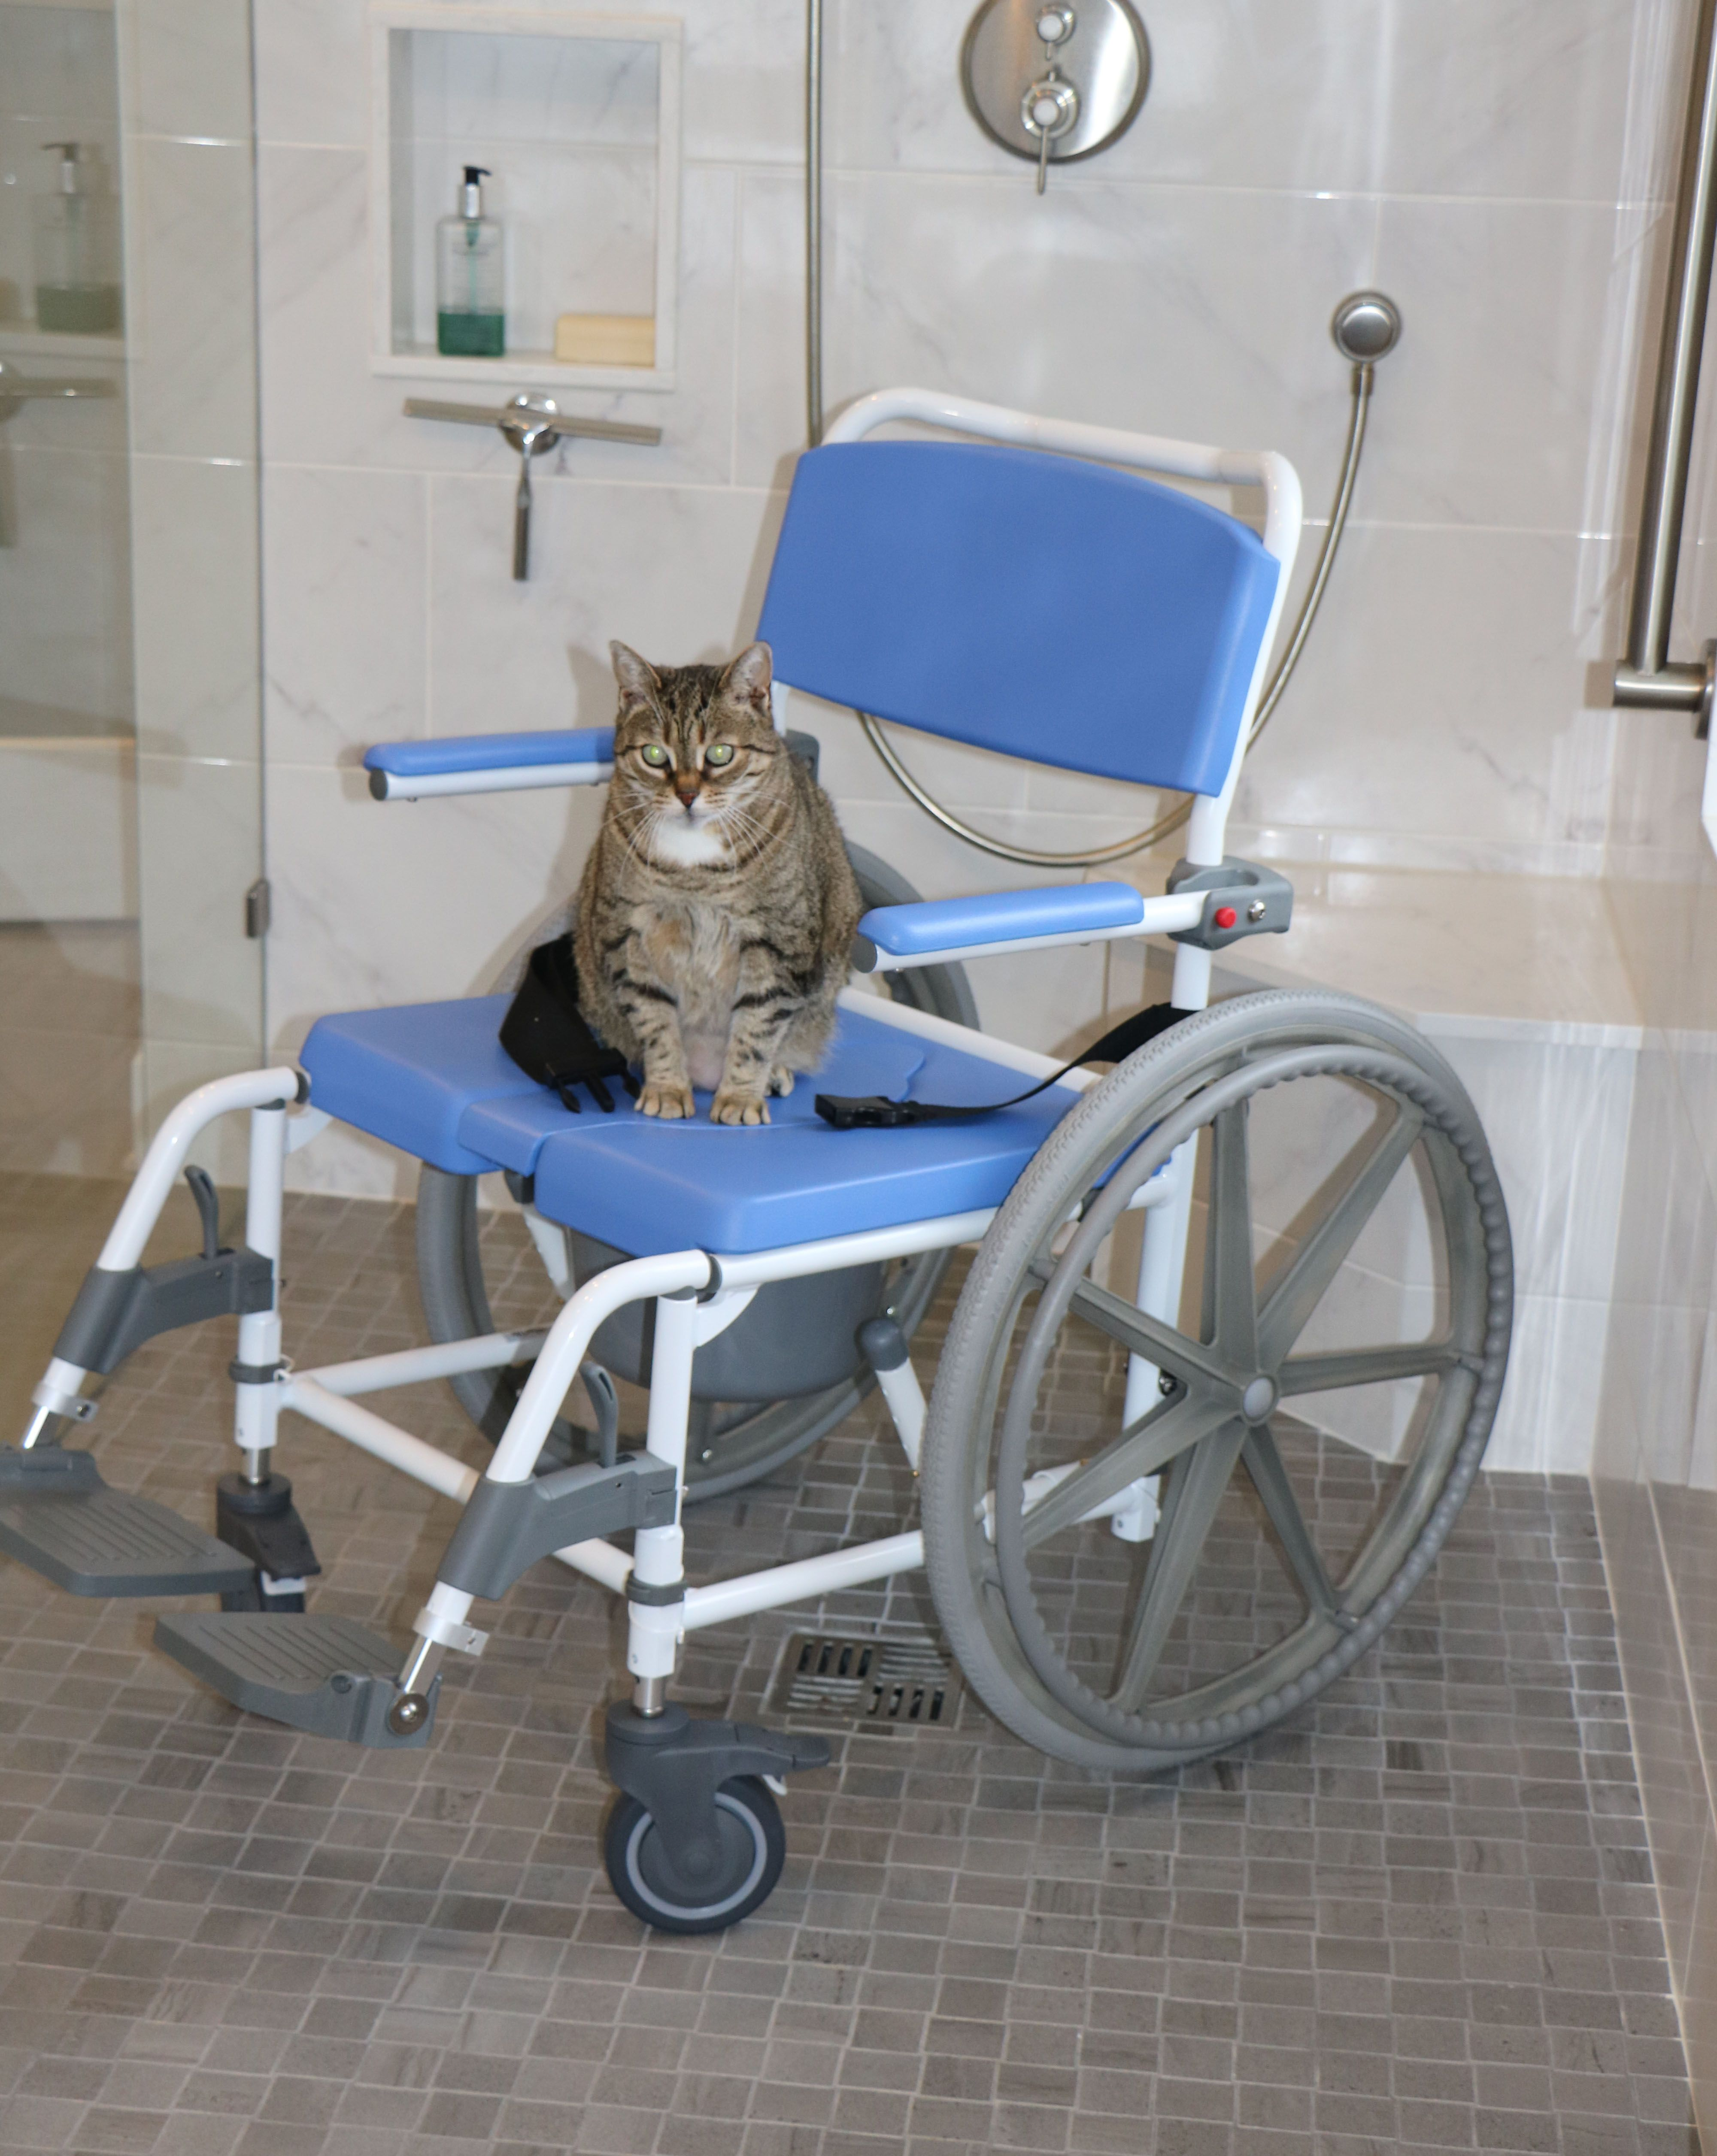 A shower wheelchair or a rolling shower chair is perfect